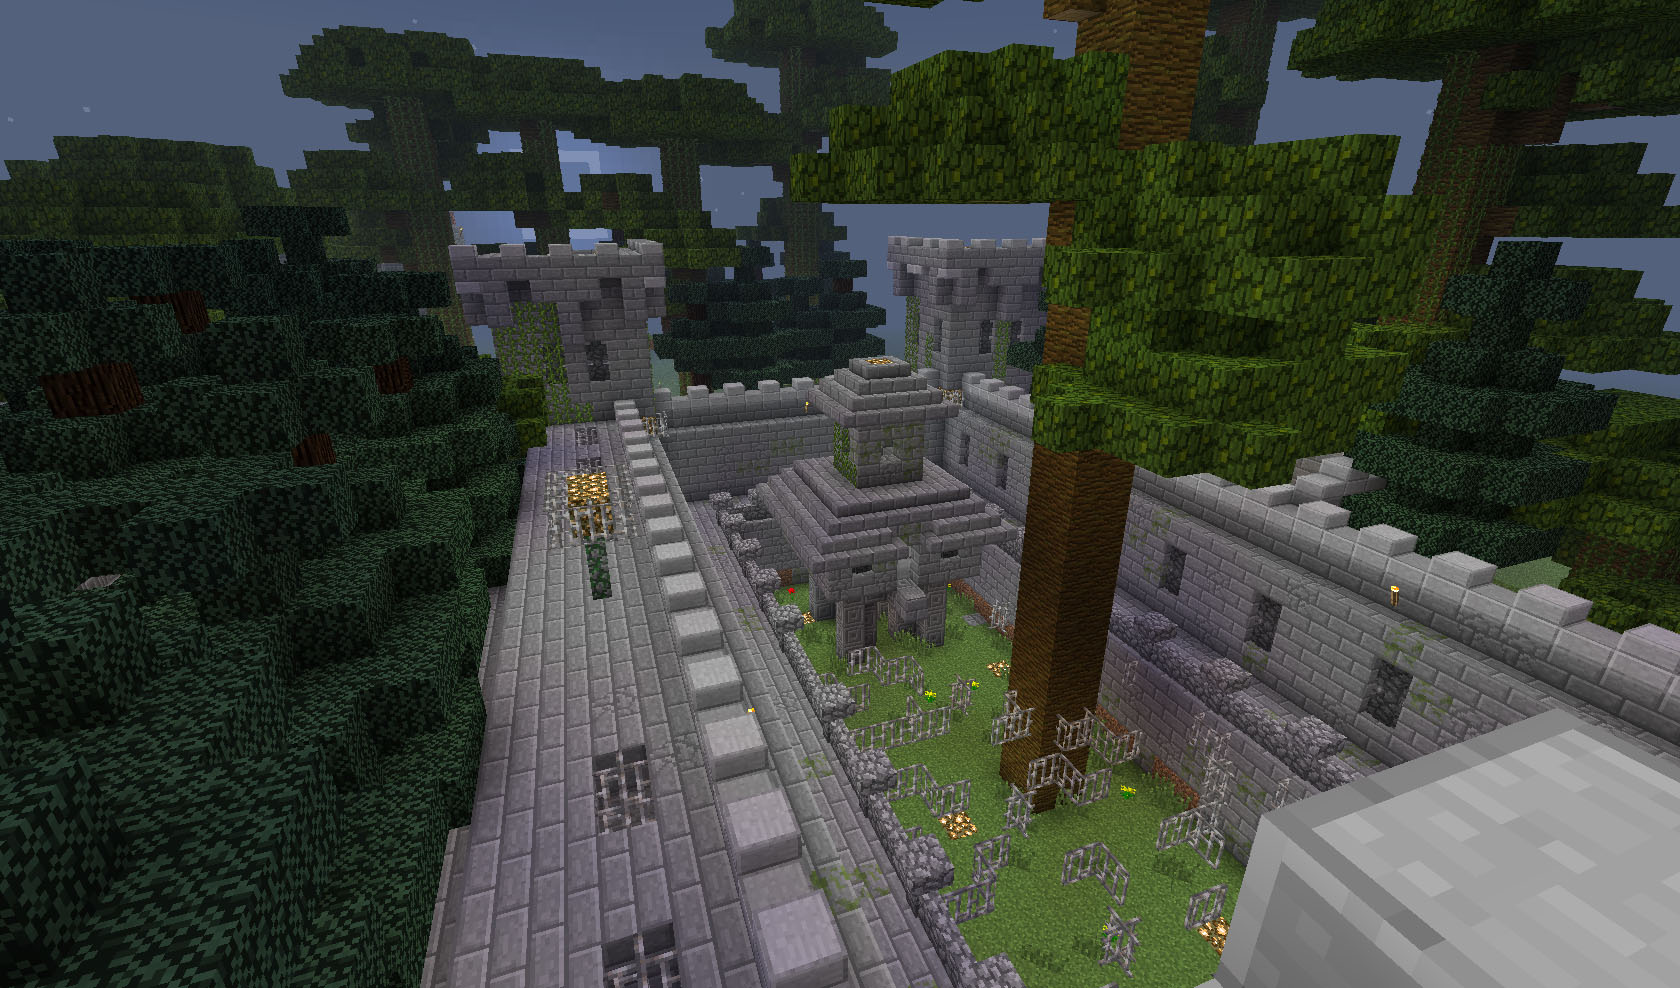 http://minecraft-forum.net/wp-content/uploads/2013/02/155fa__Prison-Adventure-Map-3.jpg